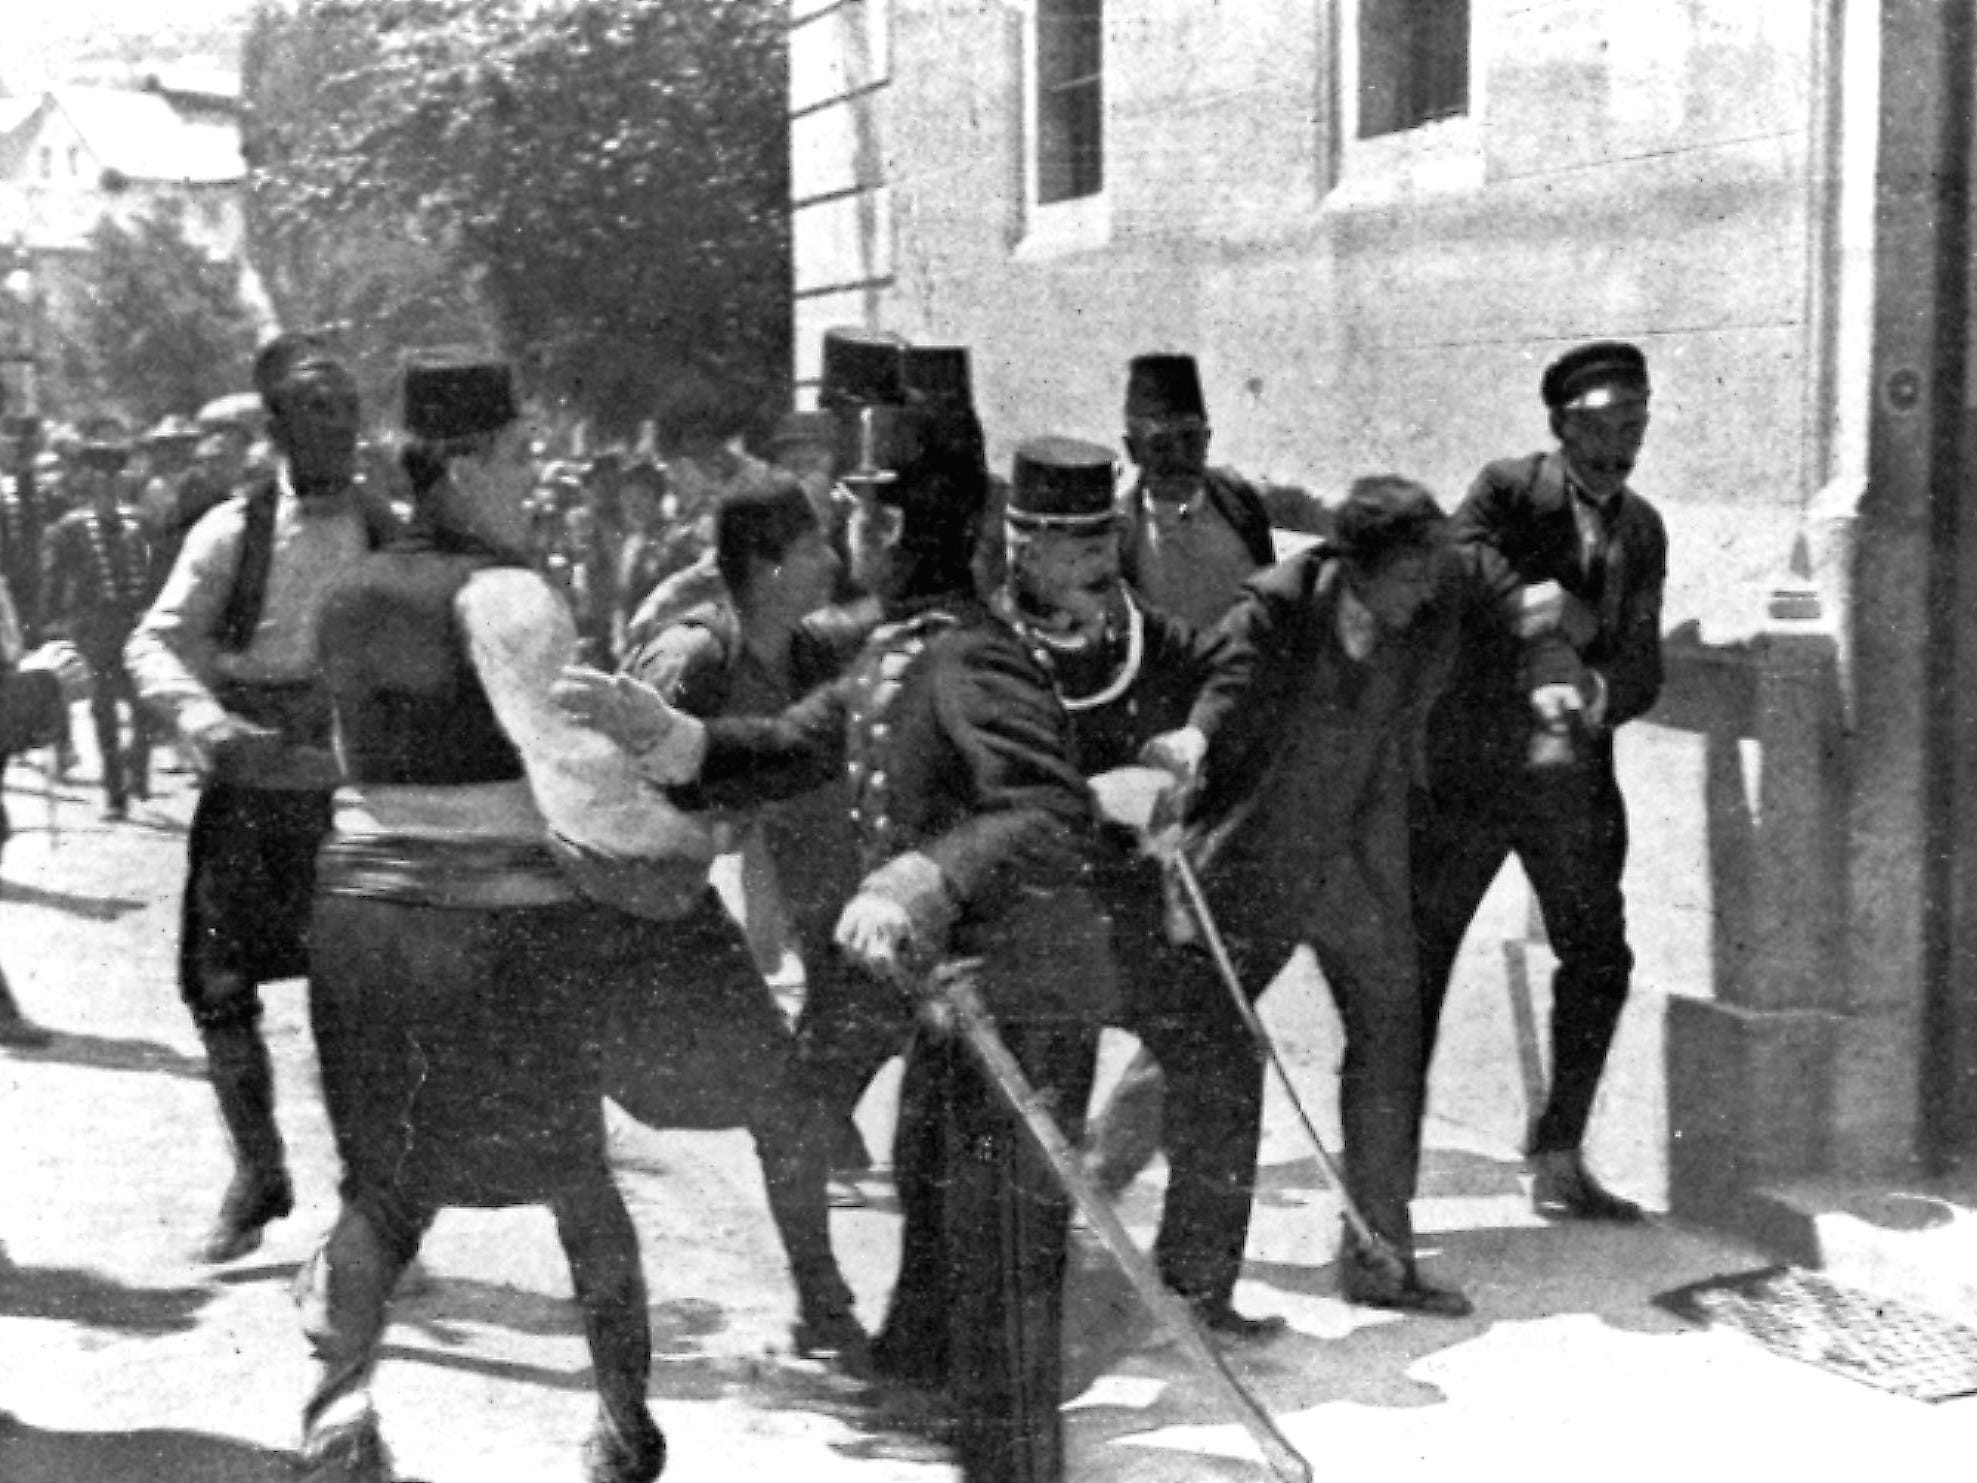 In this June 28, 1914, file photo, police pursue a suspect after the shooting of Austria's Archduke Franz Ferdinand in Sarajevo, Yugoslavia. Young Serb nationalist Gavrilo Princip fired the shots that assassinated Ferdinand, heir to the Austrian-Hungarian throne, and his wife Sophie.